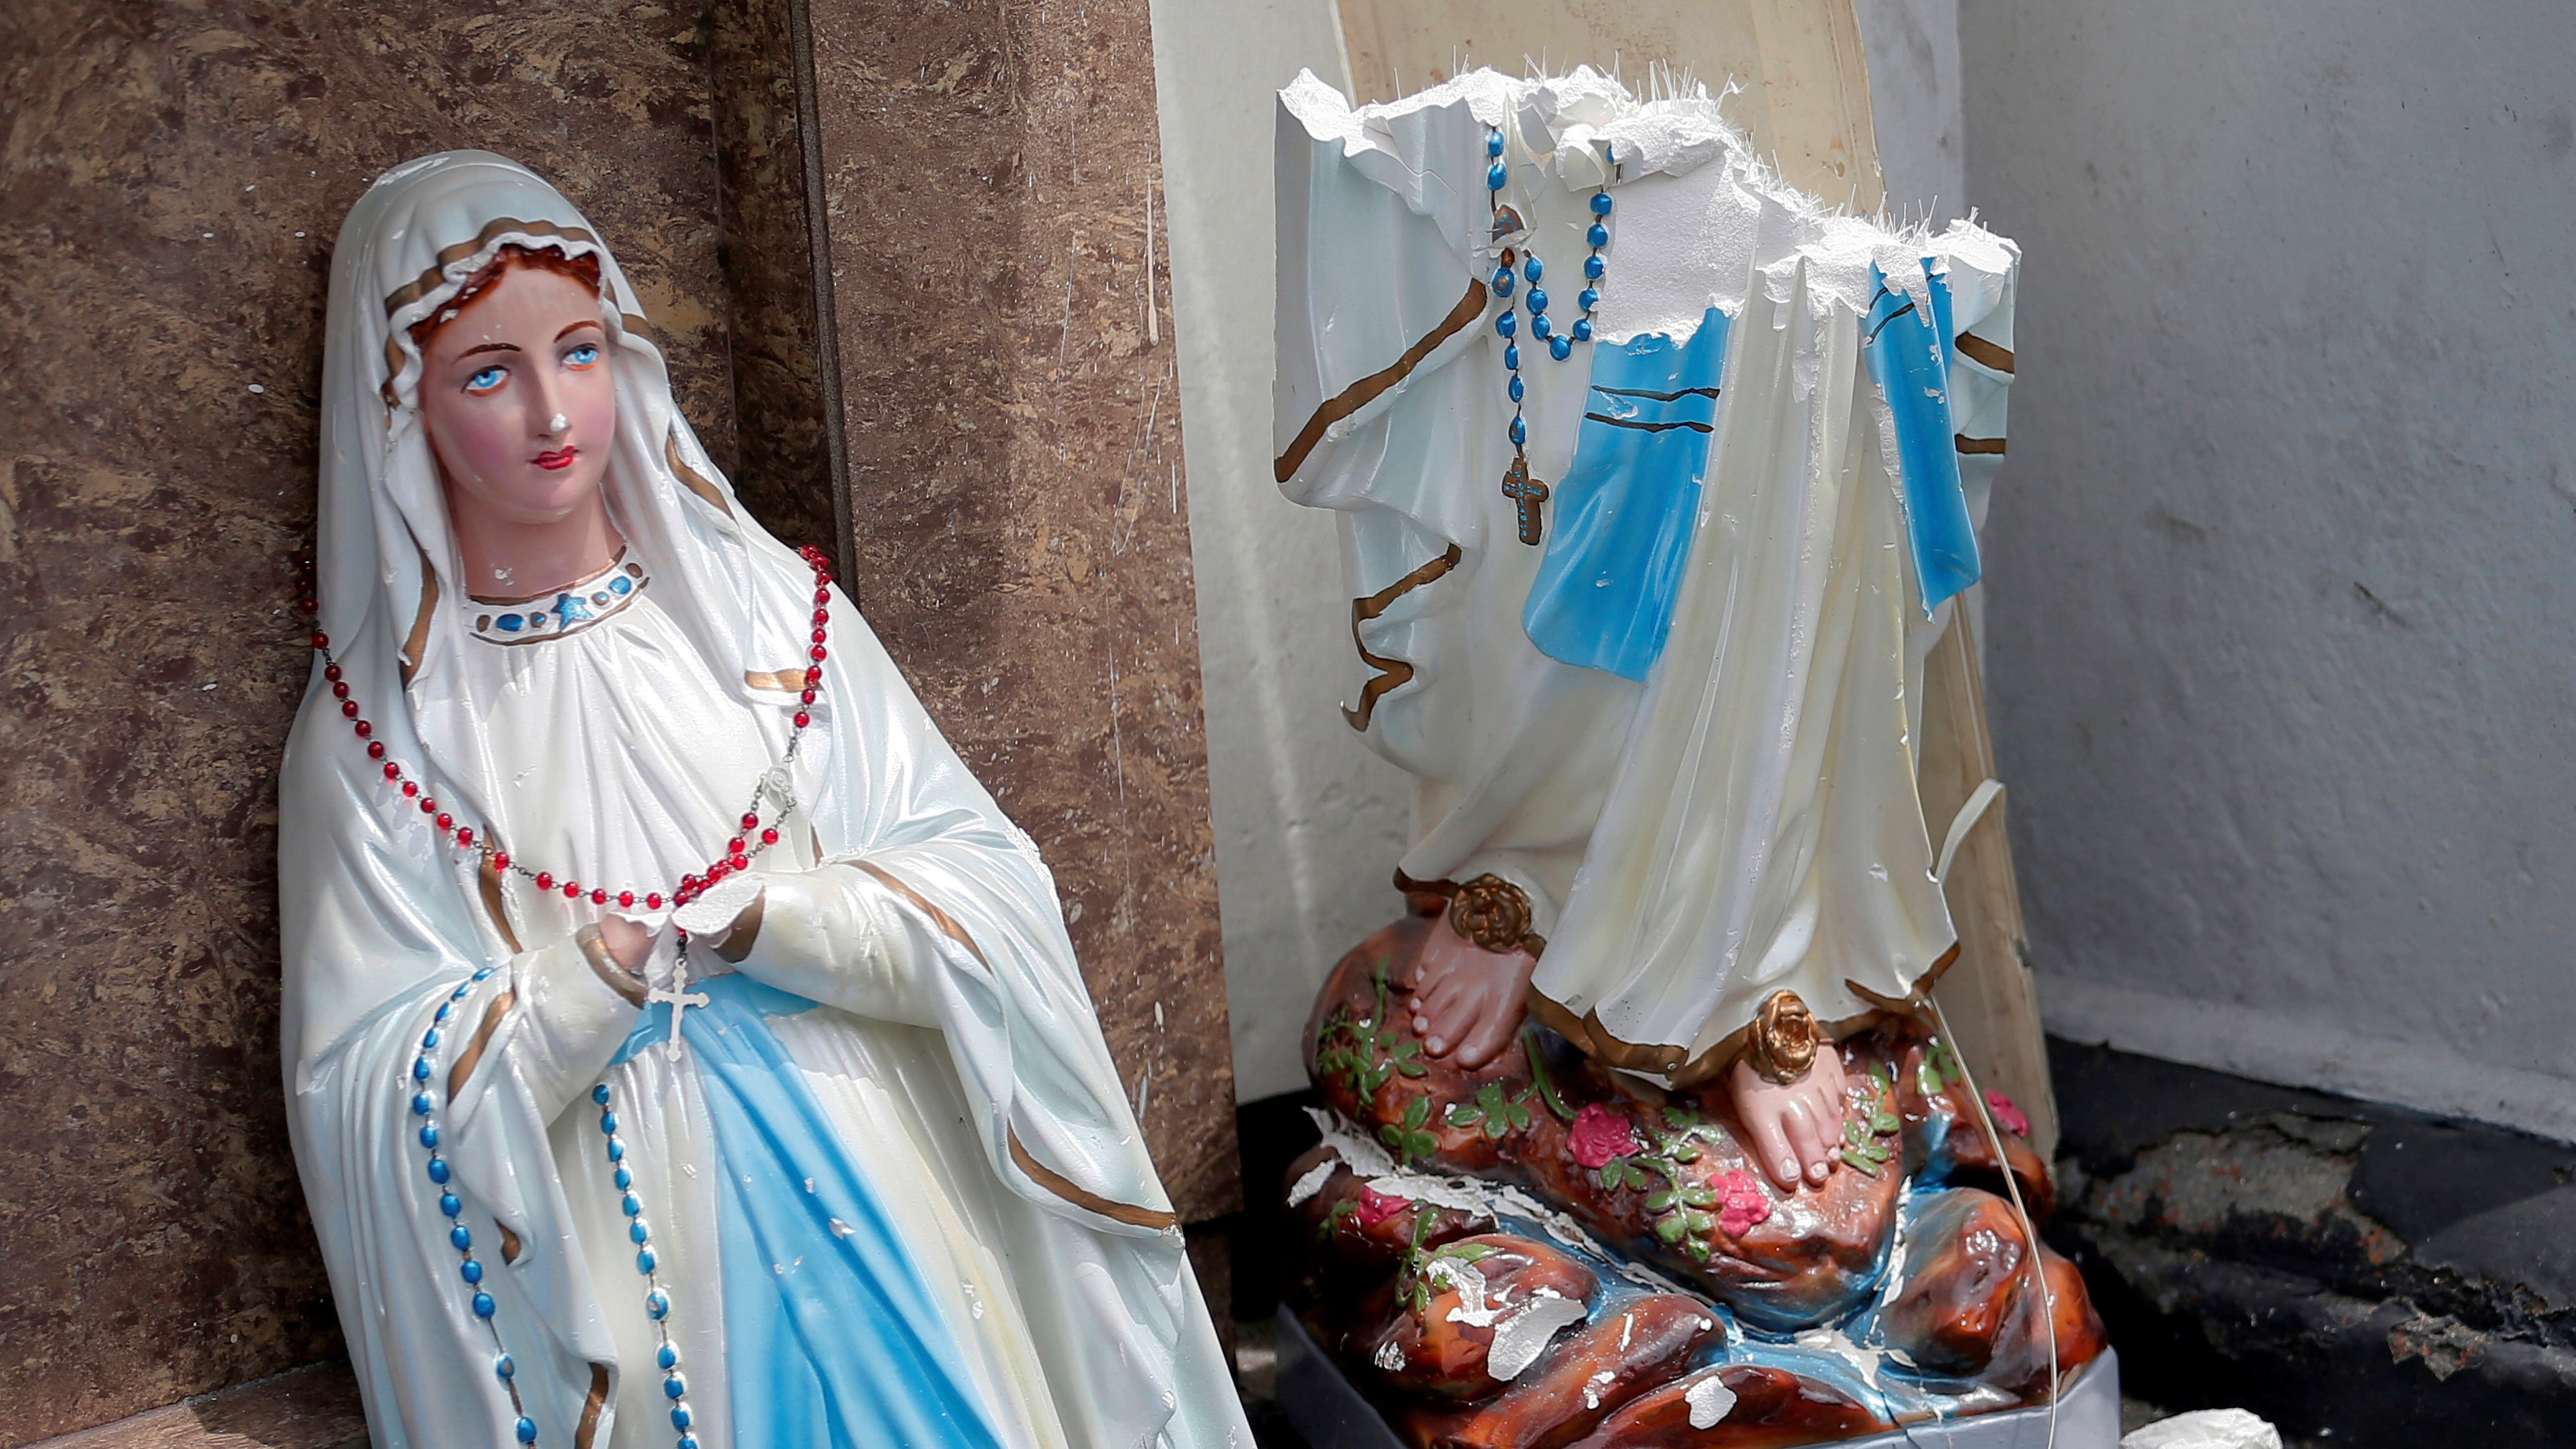 A statue of Virgin Mary in front of the St. Anthony's Shrine, Kochchikade church after an explosion in Colombo, Sri Lanka.